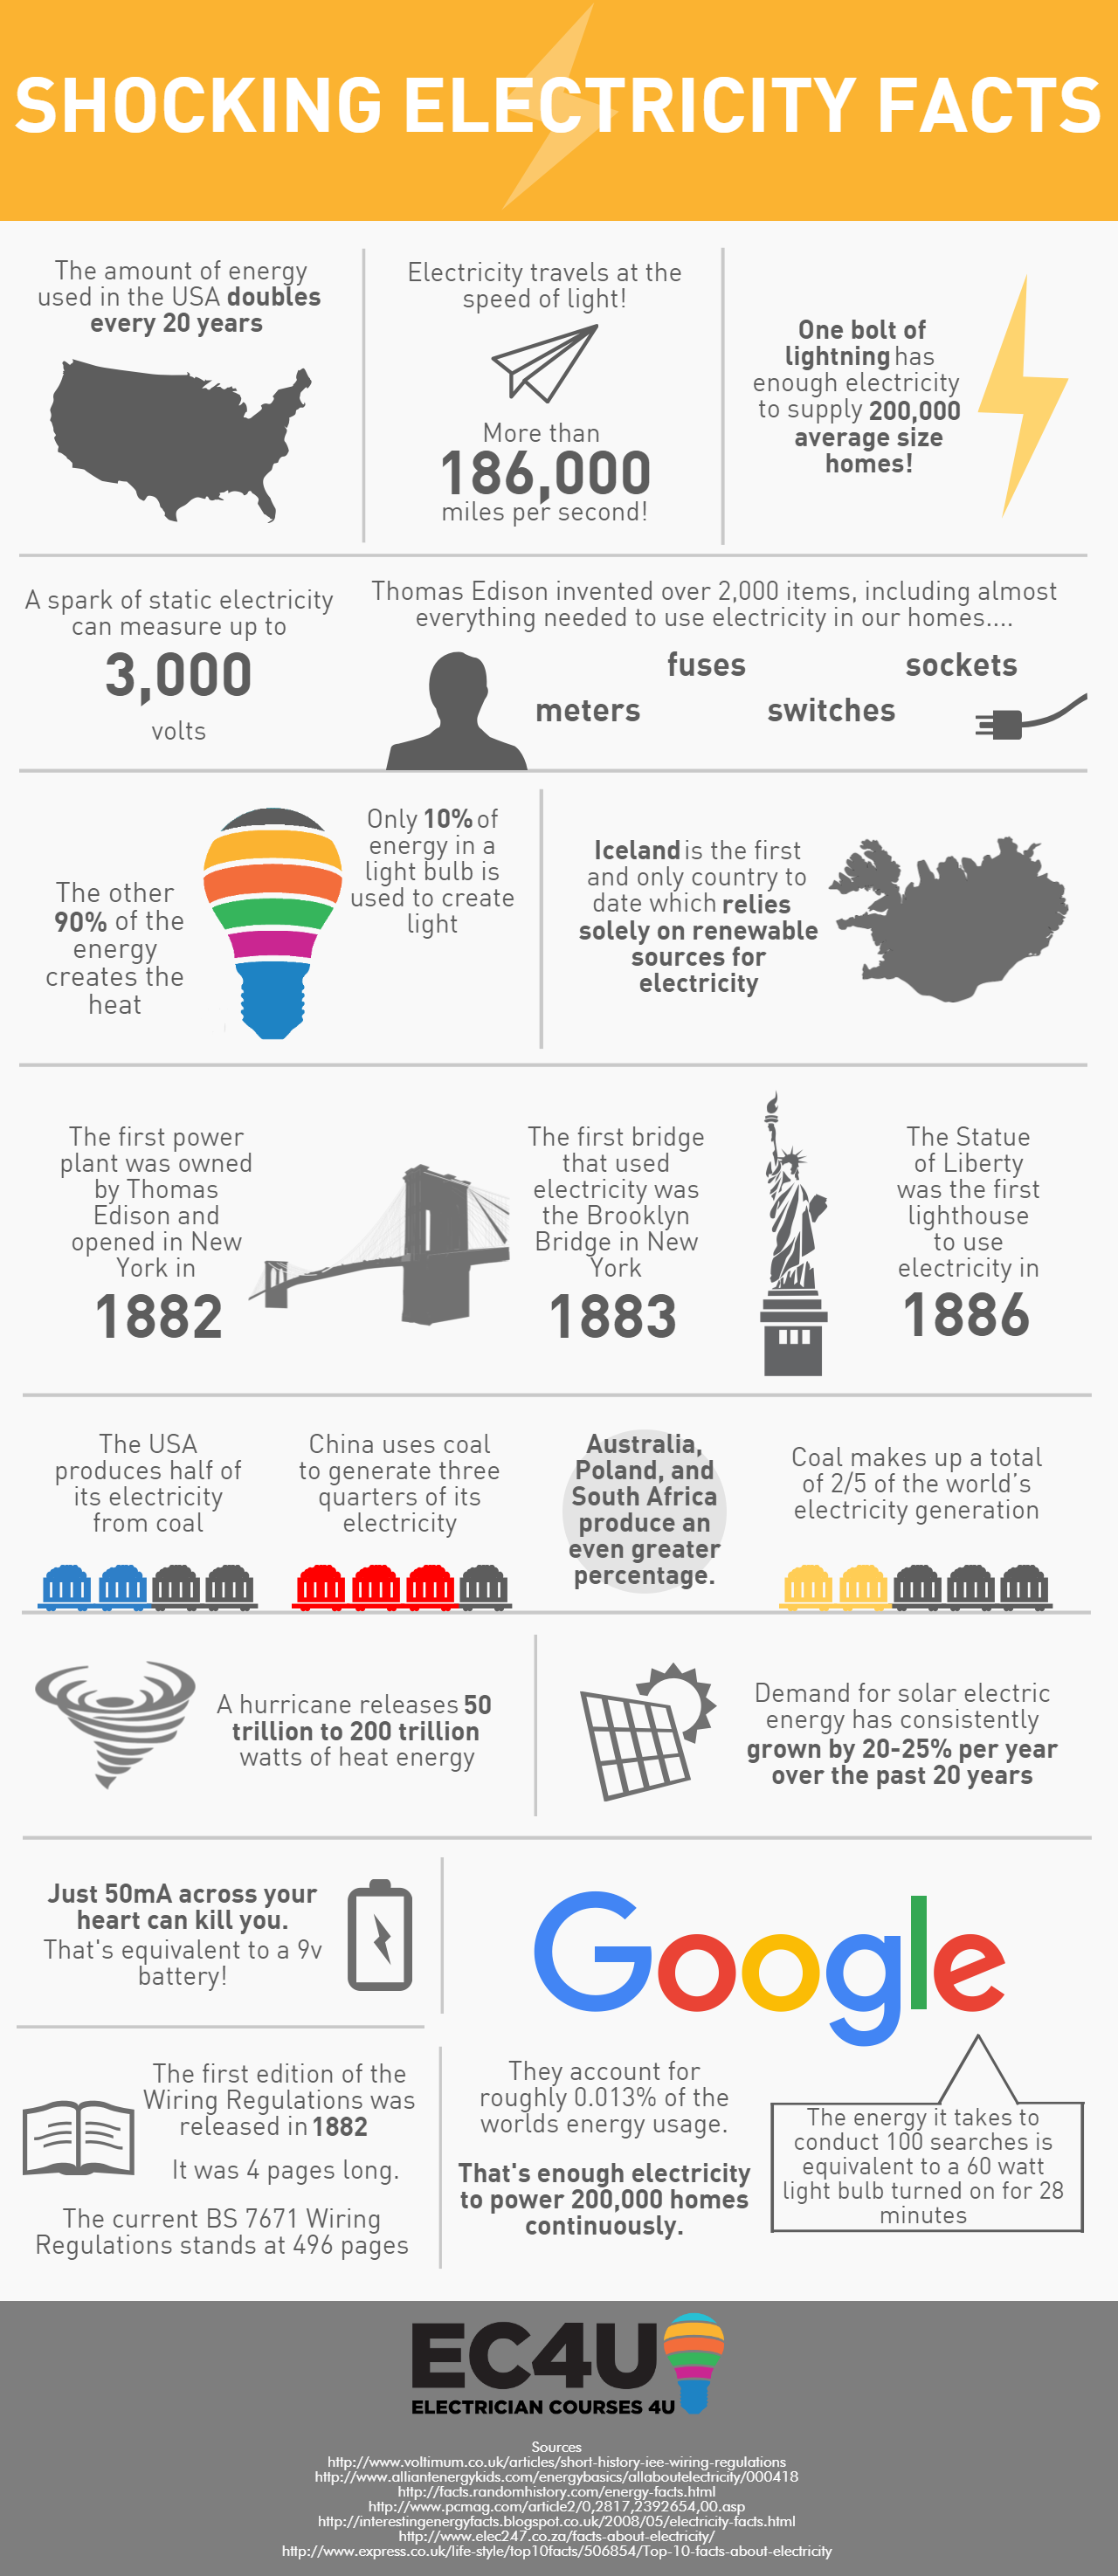 Shocking Electricity Statistics And Facts With Images